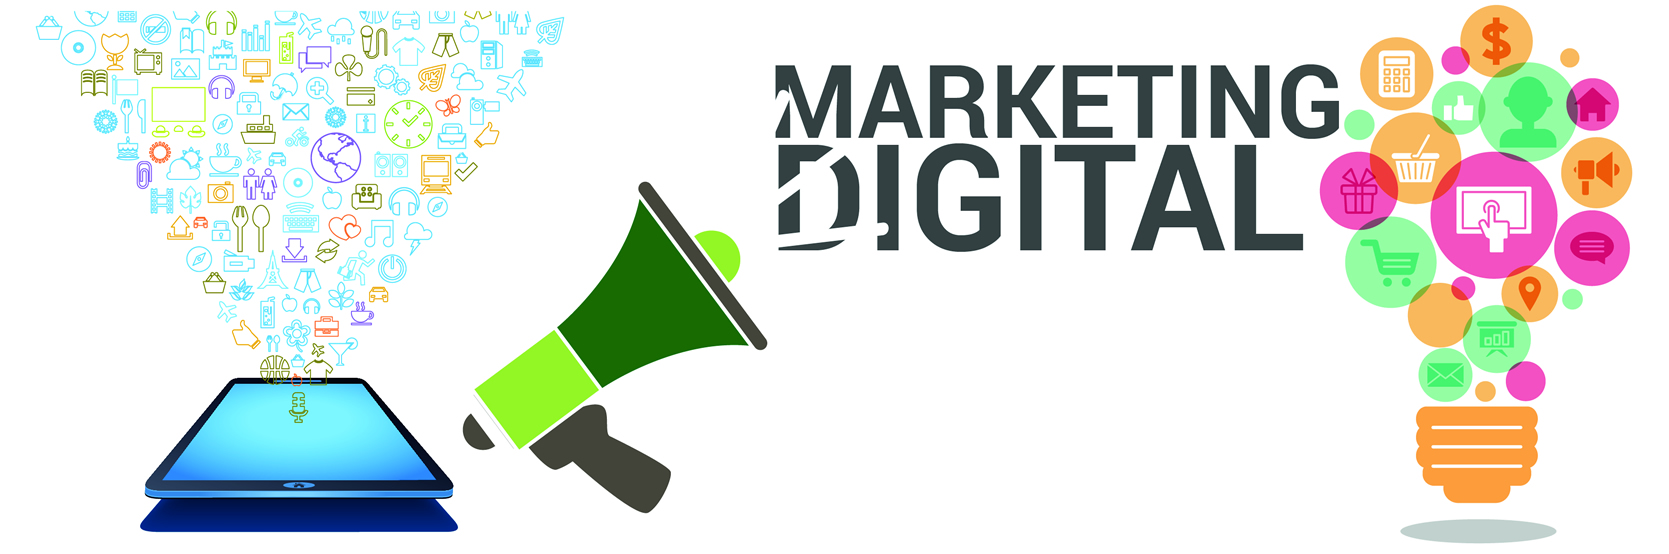 marketing-digital-webbyte-cordoba